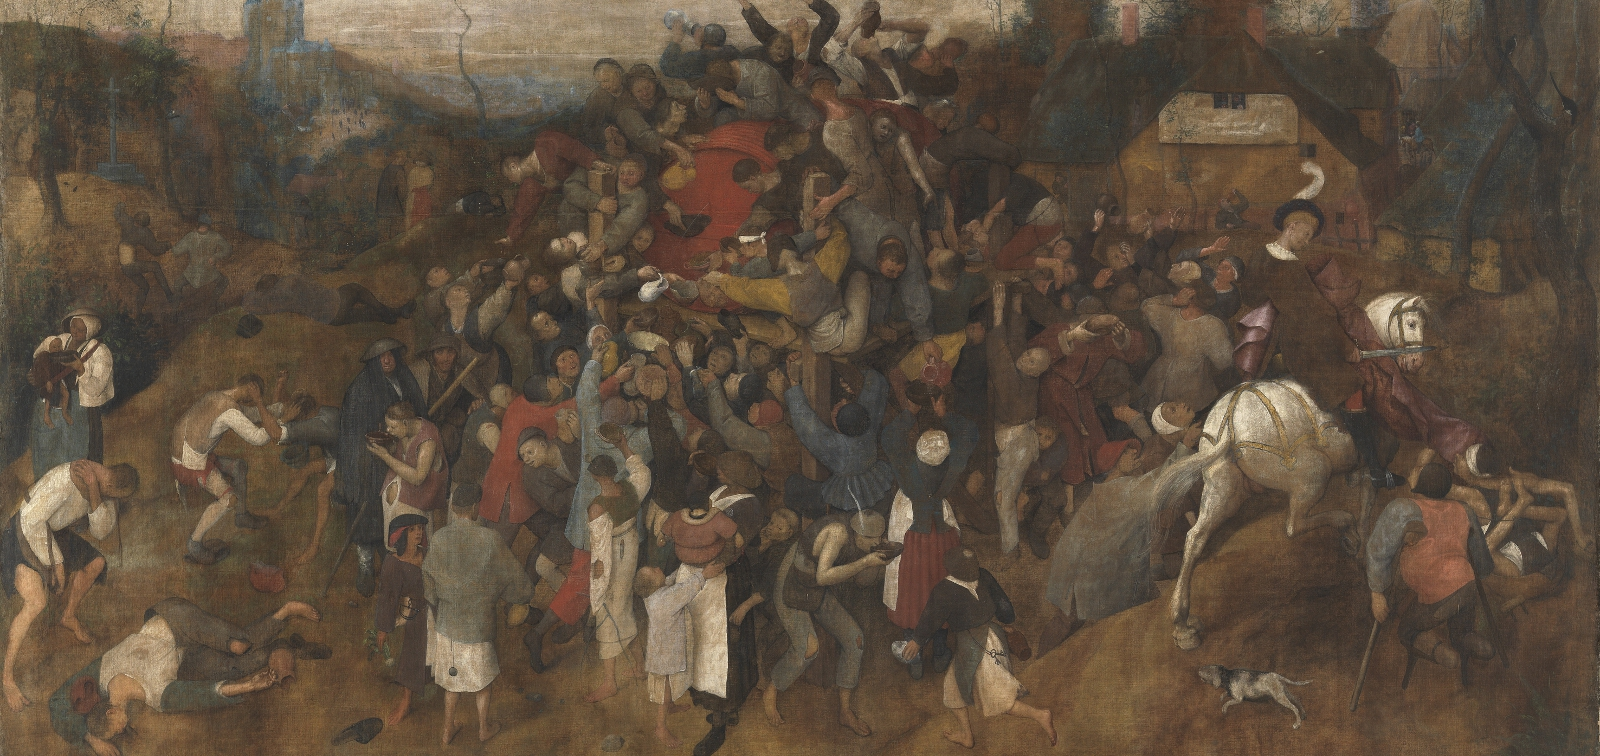 Special display: The Wine of Saint Martin's Day by Bruegel the Elder